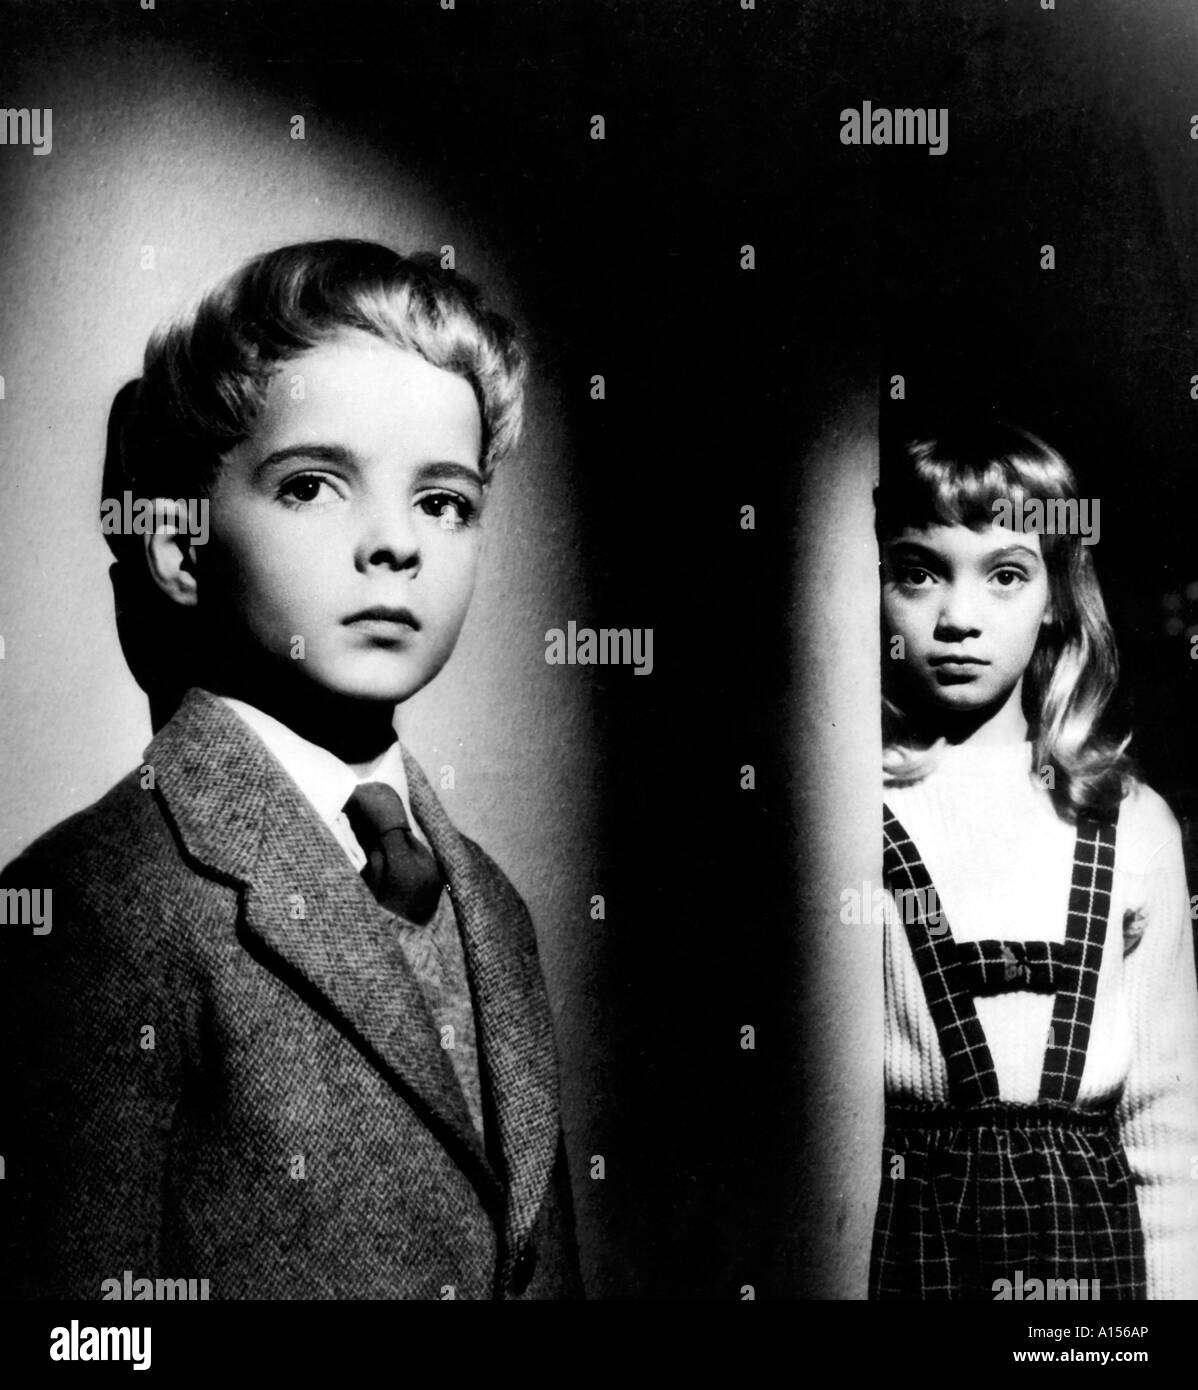 The Village Of The Damned Year 1960 Director Wolf Rilla Based upon John Wyndham s book - Stock Image